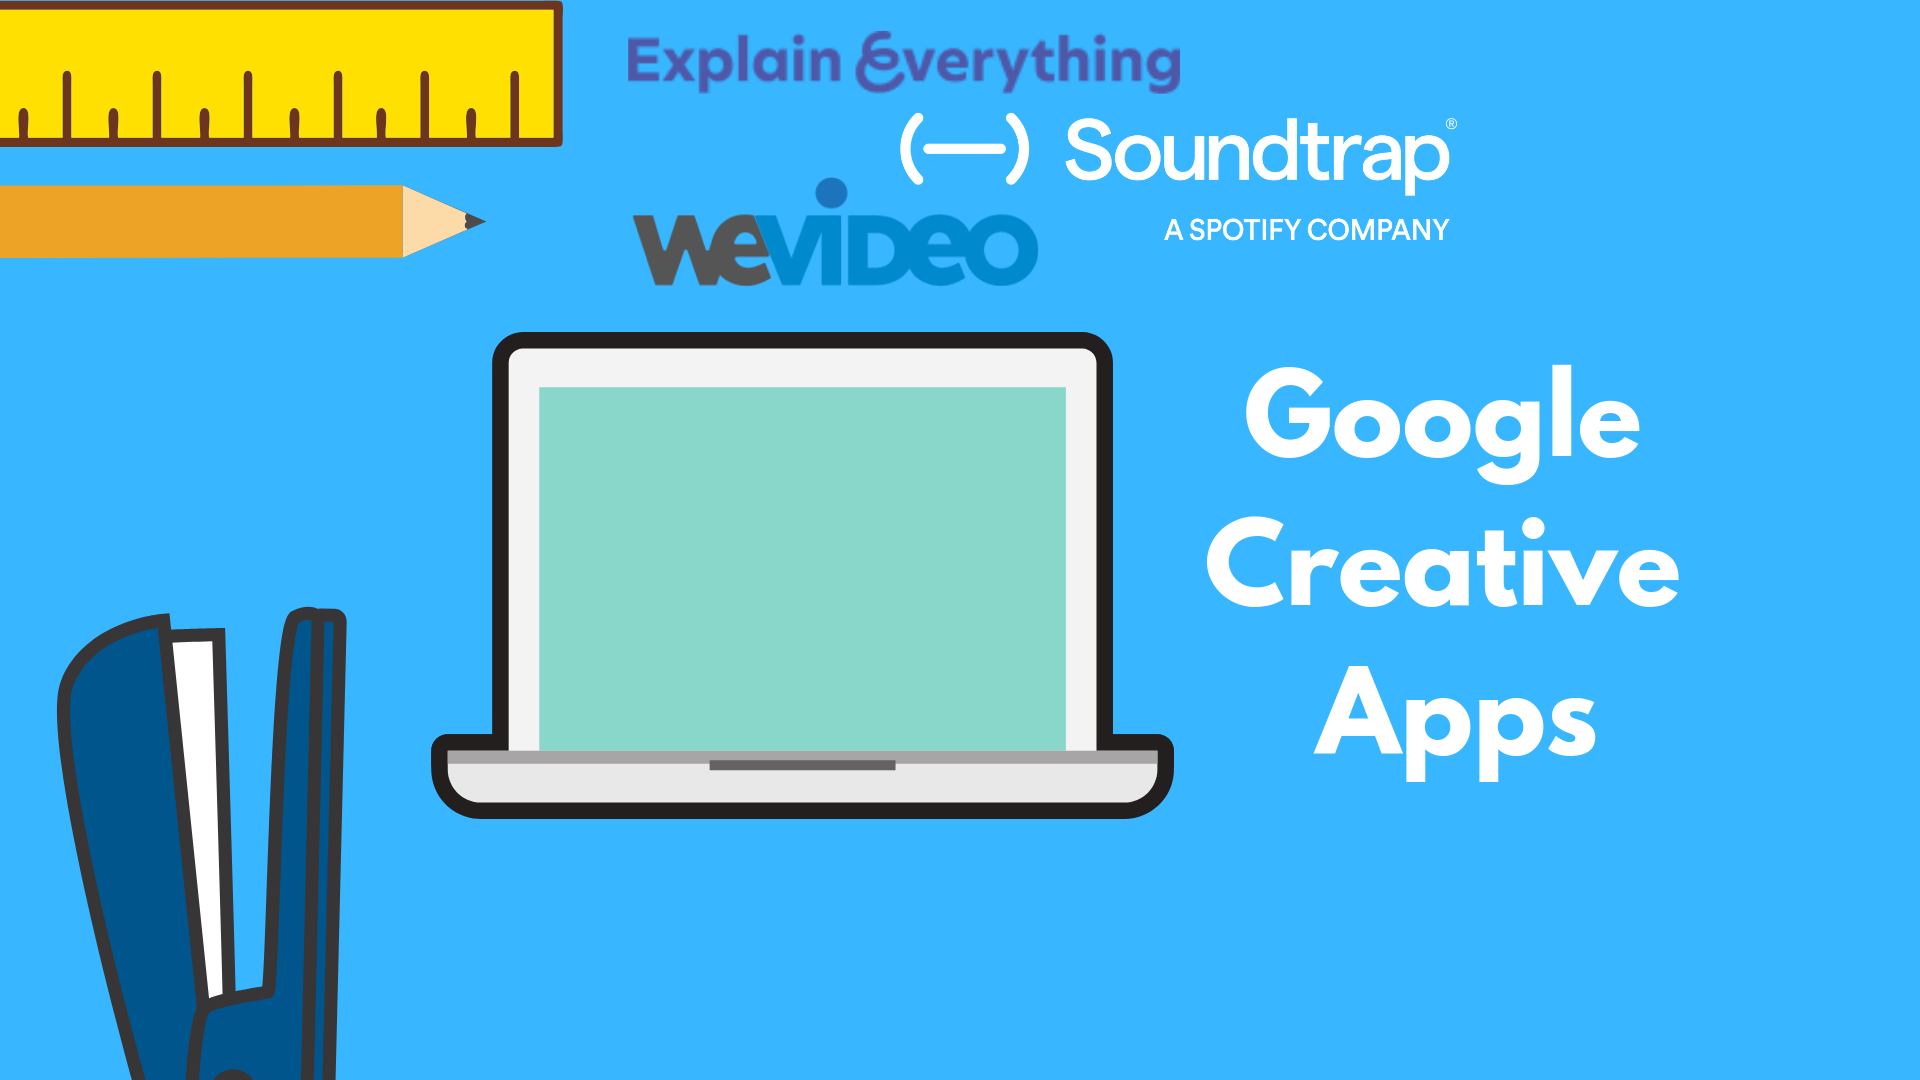 Google Creative Apps Blog Header